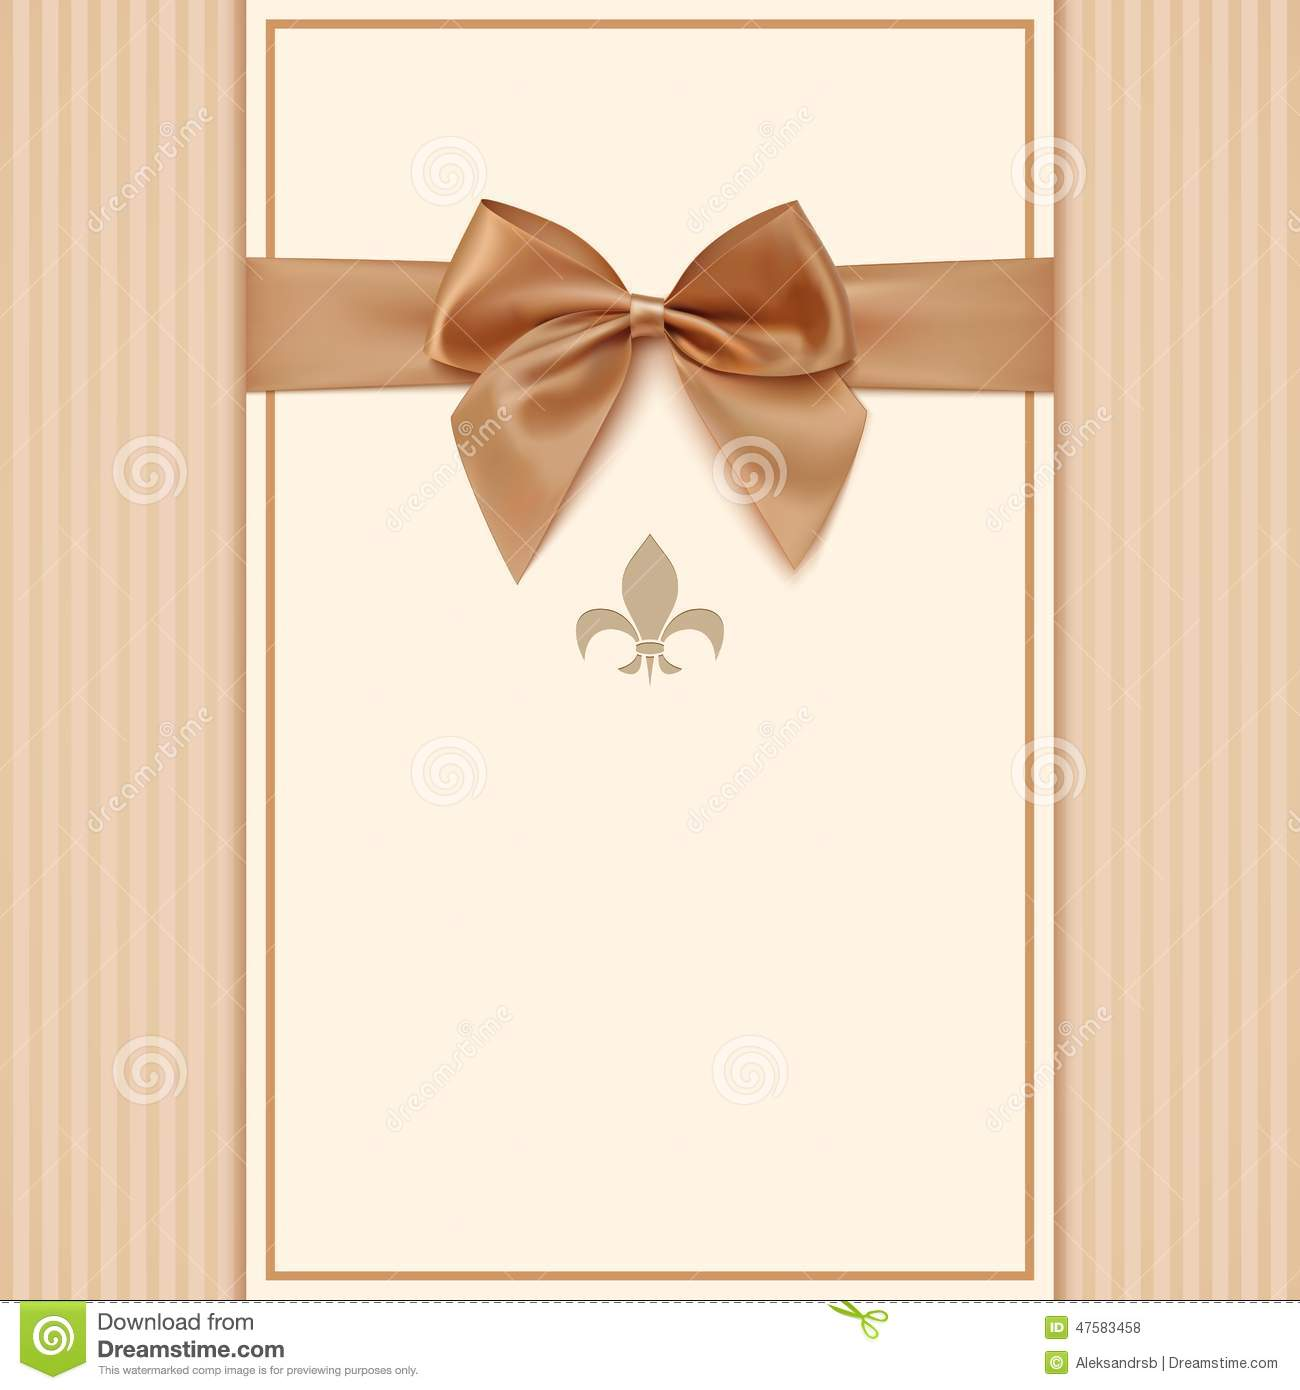 Vintage greeting card template with golden bow stock vector vintage greeting card template with golden bow filmwisefo